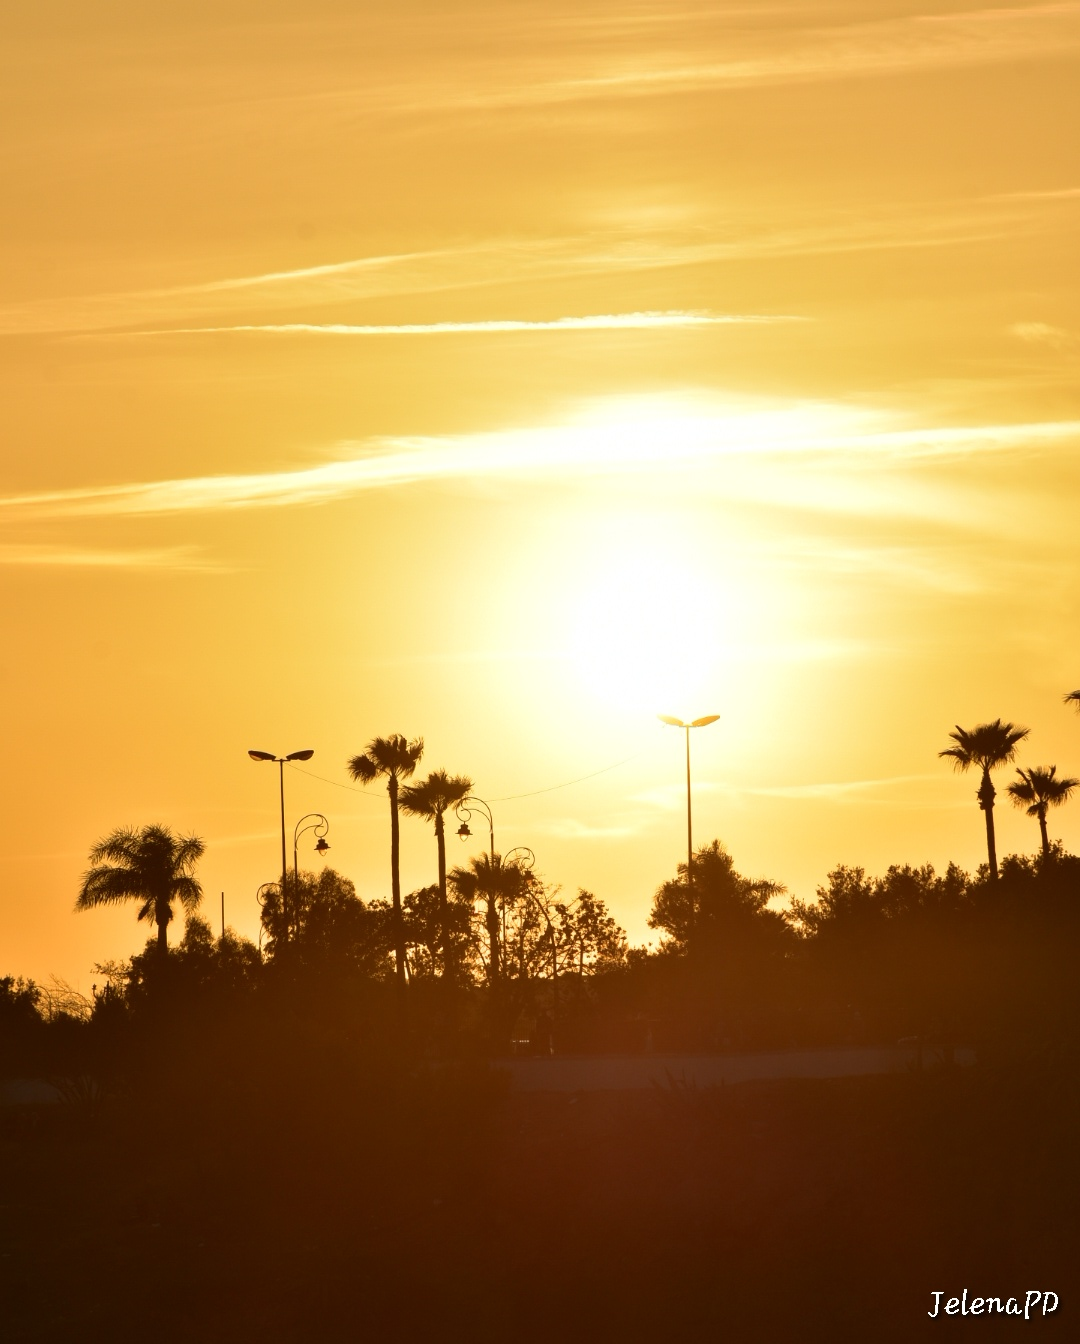 Sun setting behind the silhouettes of palm trees.